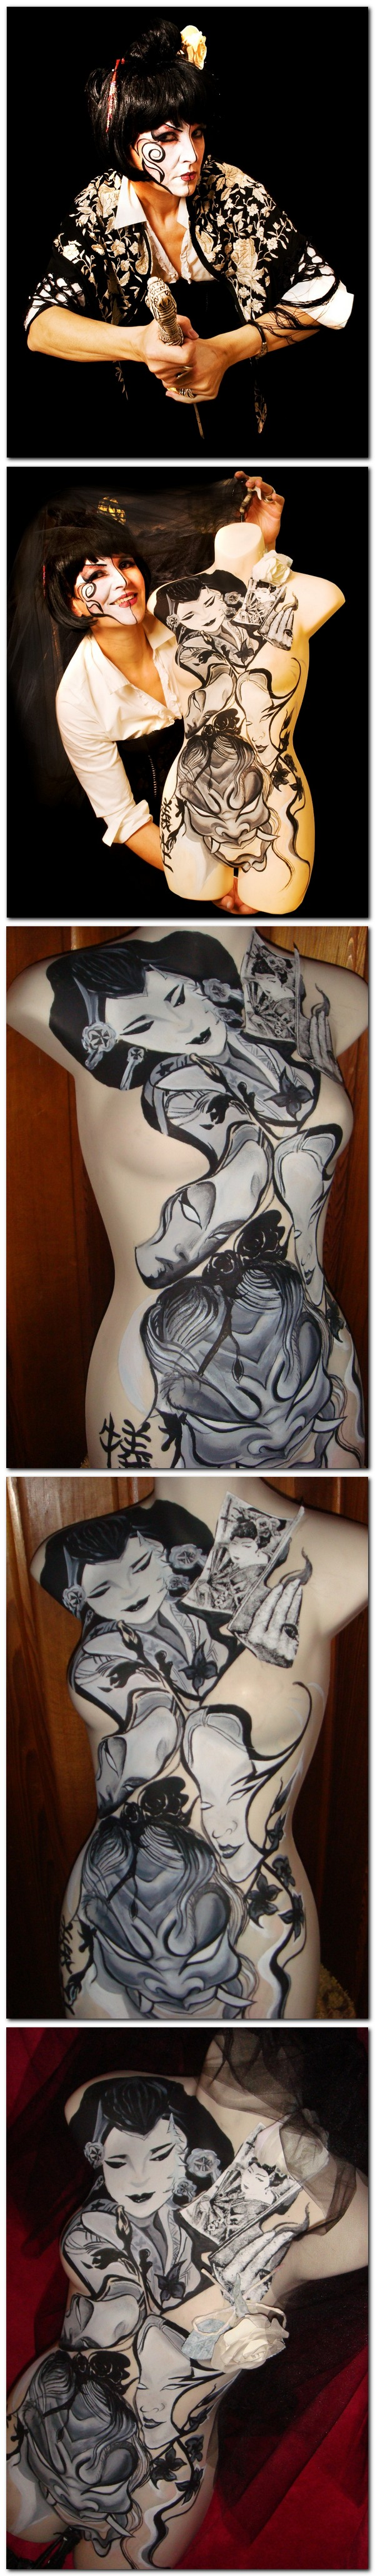 Kitchener,On Canada Jun 17, 2011 M.B modelling + bodycast painted by me Im a huge fan of my singer/actress mom : CIO-CIO-SAN/Madame Butterfly Lets take a short look at my other site MM--my artwork: # 767635